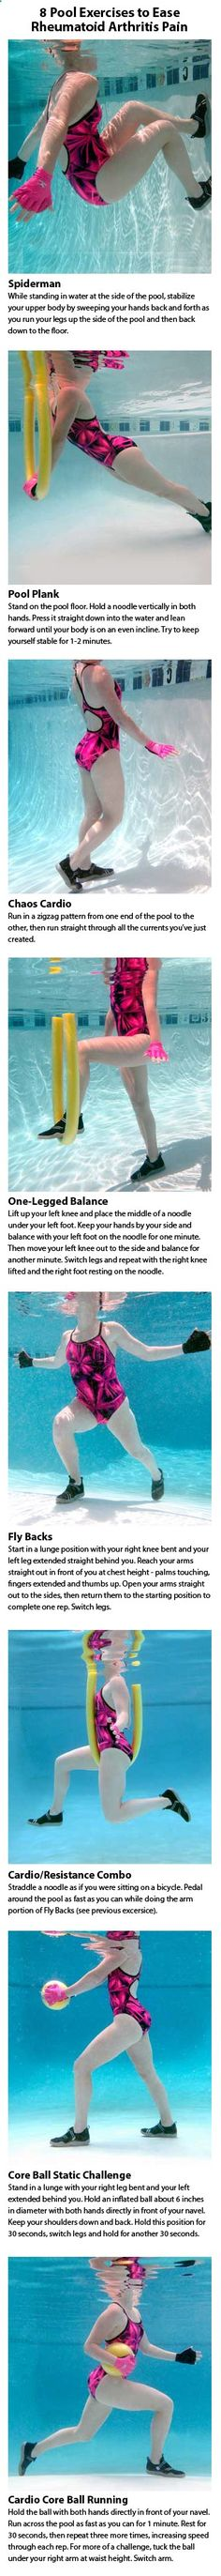 8 Pool Exercises to Ease Rheumatoid #Arthritis Pain www.mywellbeingma...